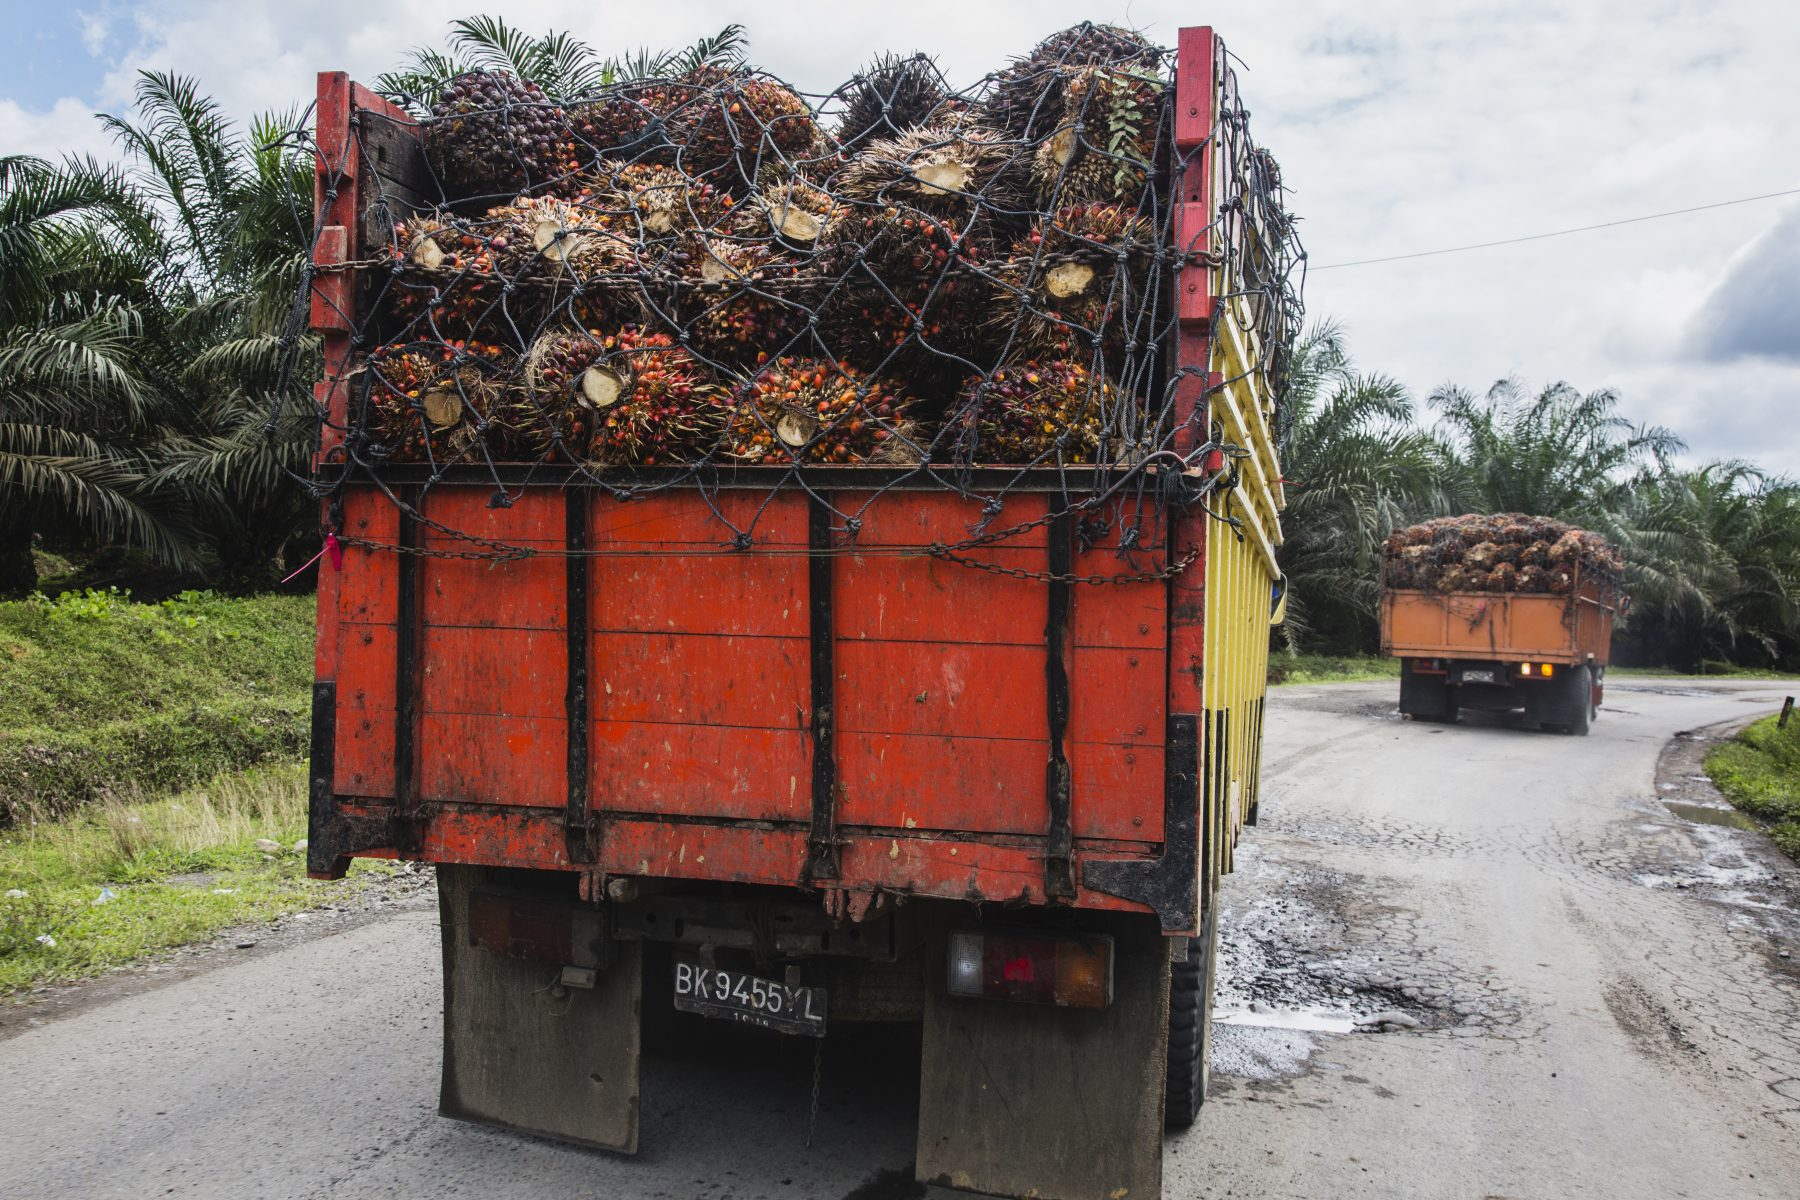 Being delivered at processing plant, harvested palm oil fruit grown to be exported to the west for use in processed food stuffs, cosmetics, household cleaning products and more. Palm oil plantations are cutting down and burning primary and secondary forests vital as habitat for wildlife including the critically endangered Sumatran and Borneo orangutans, Sumatra, Indonesia